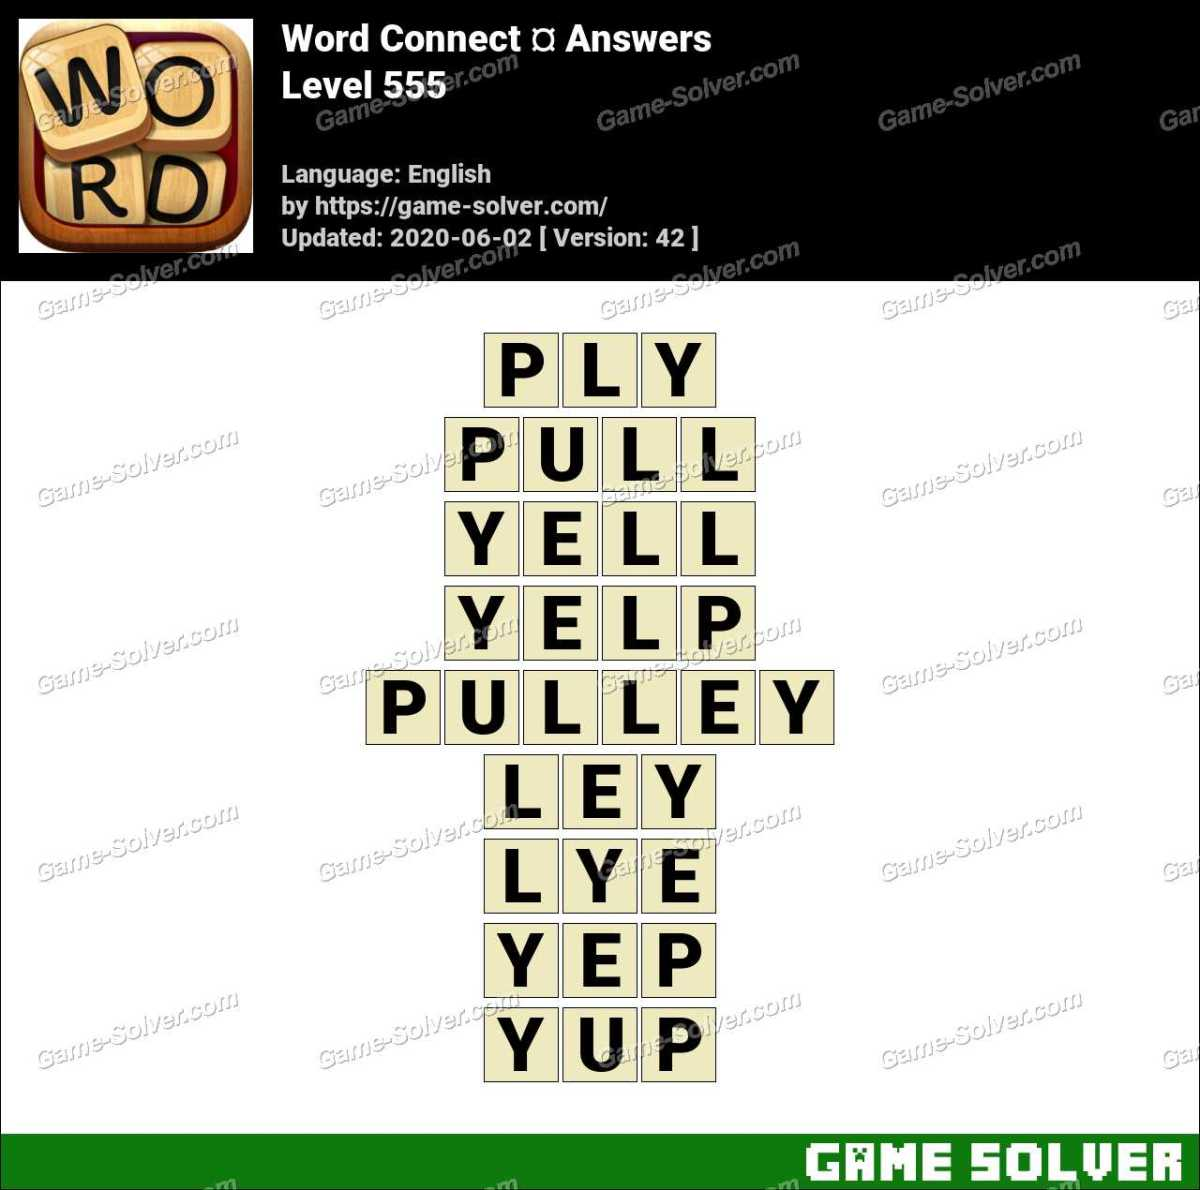 Word Connect Level 555 Answers